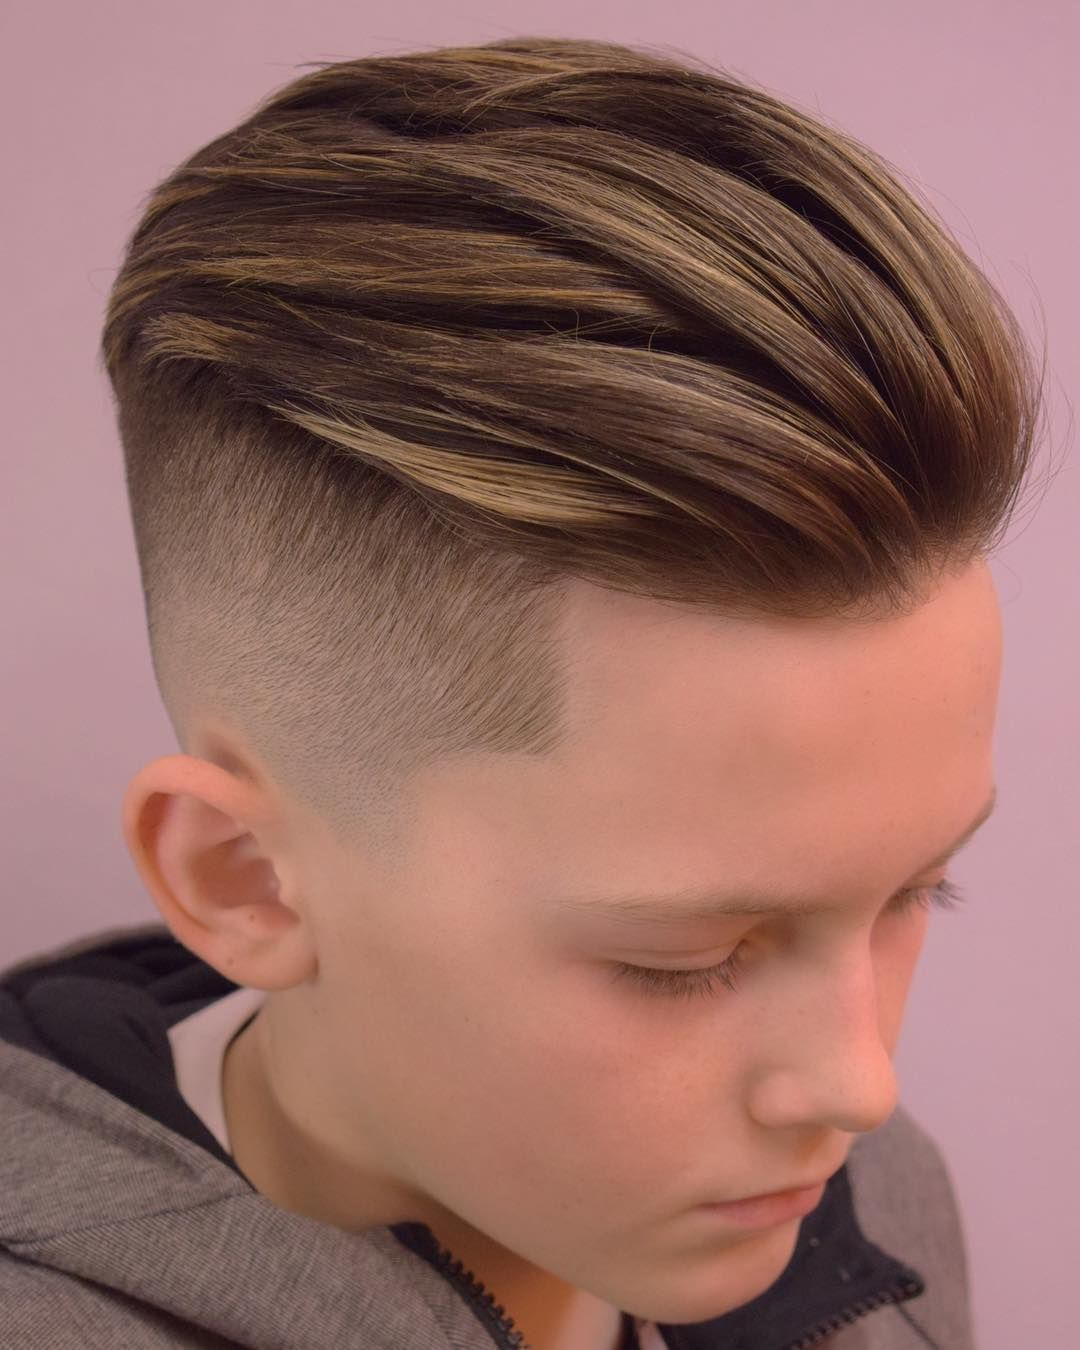 32 trendy and cute boys hairstyle for 2018 | hairstyle & haircut